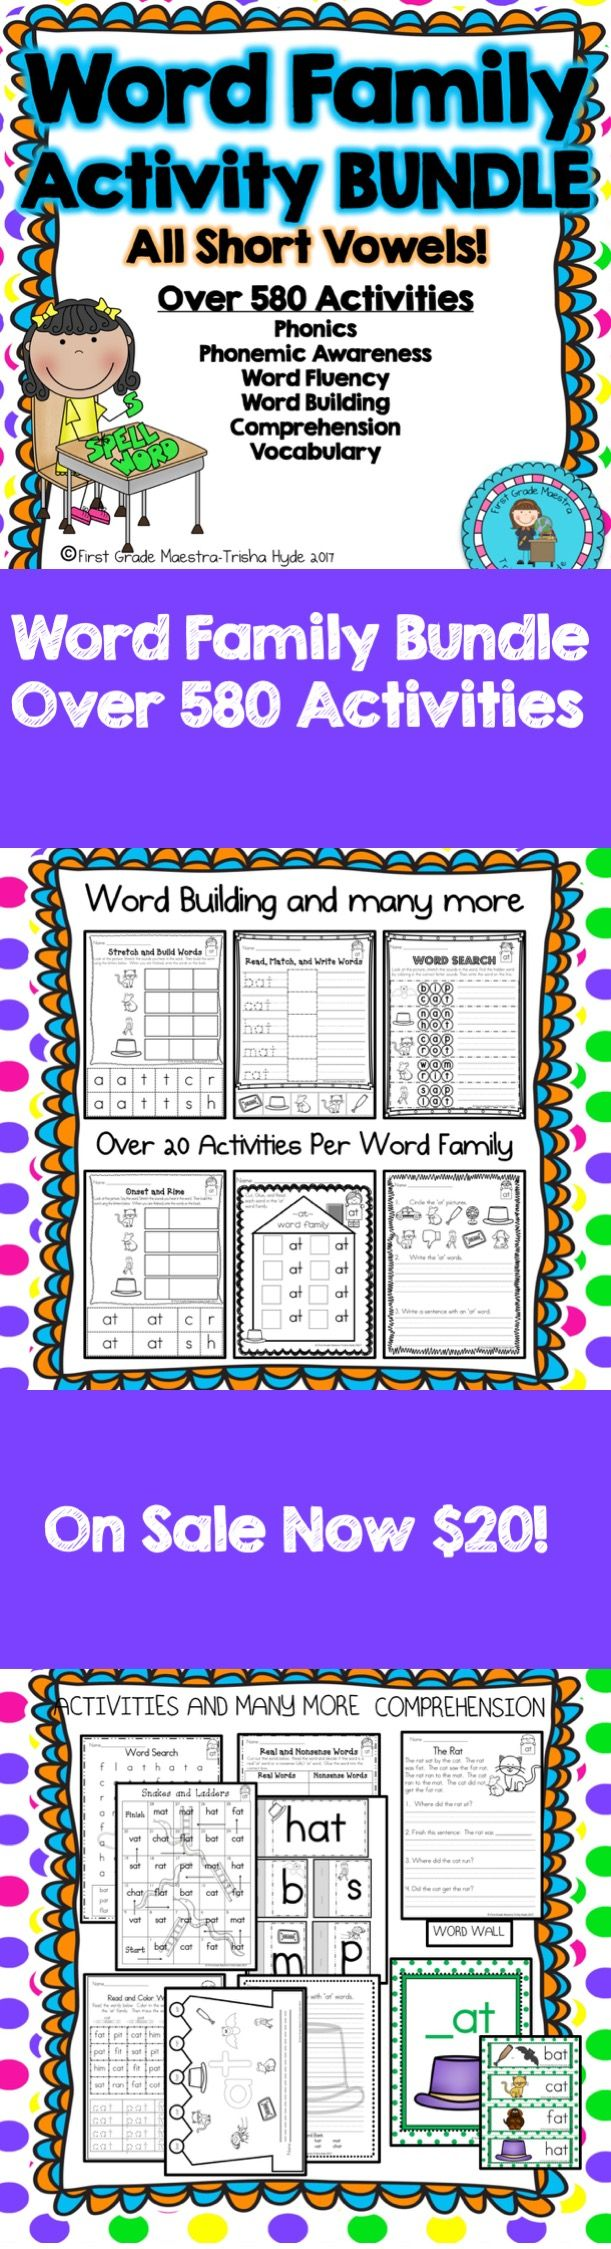 Word family short vowels mega bundle all short vowels this product has over 580 different activities